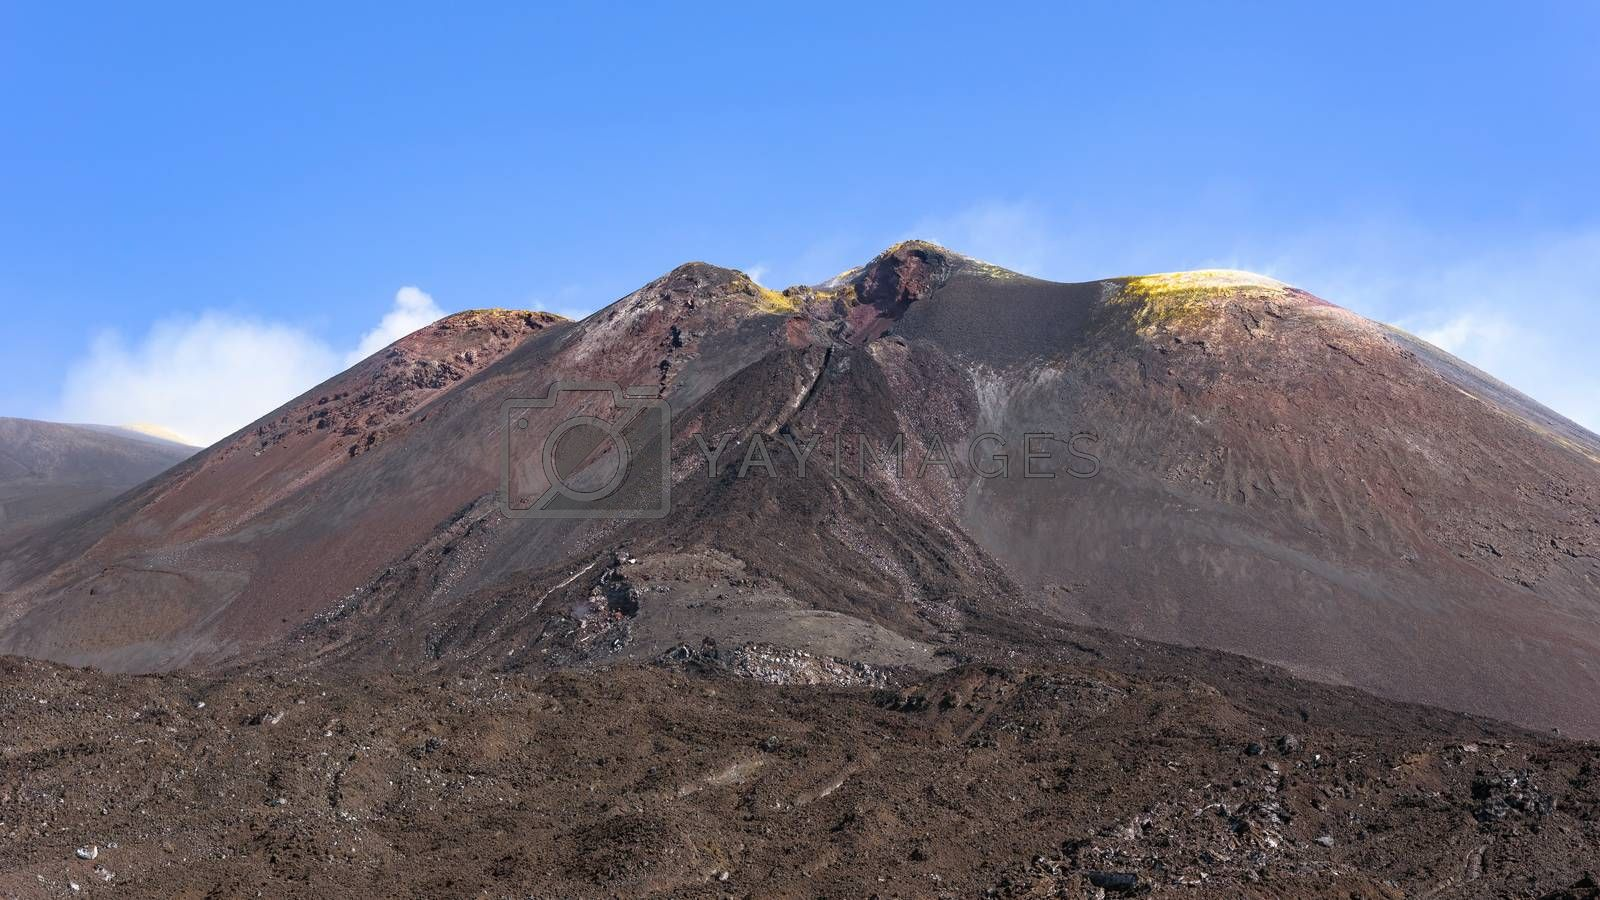 View of the Mount Etna main craters, Sicily, Italy